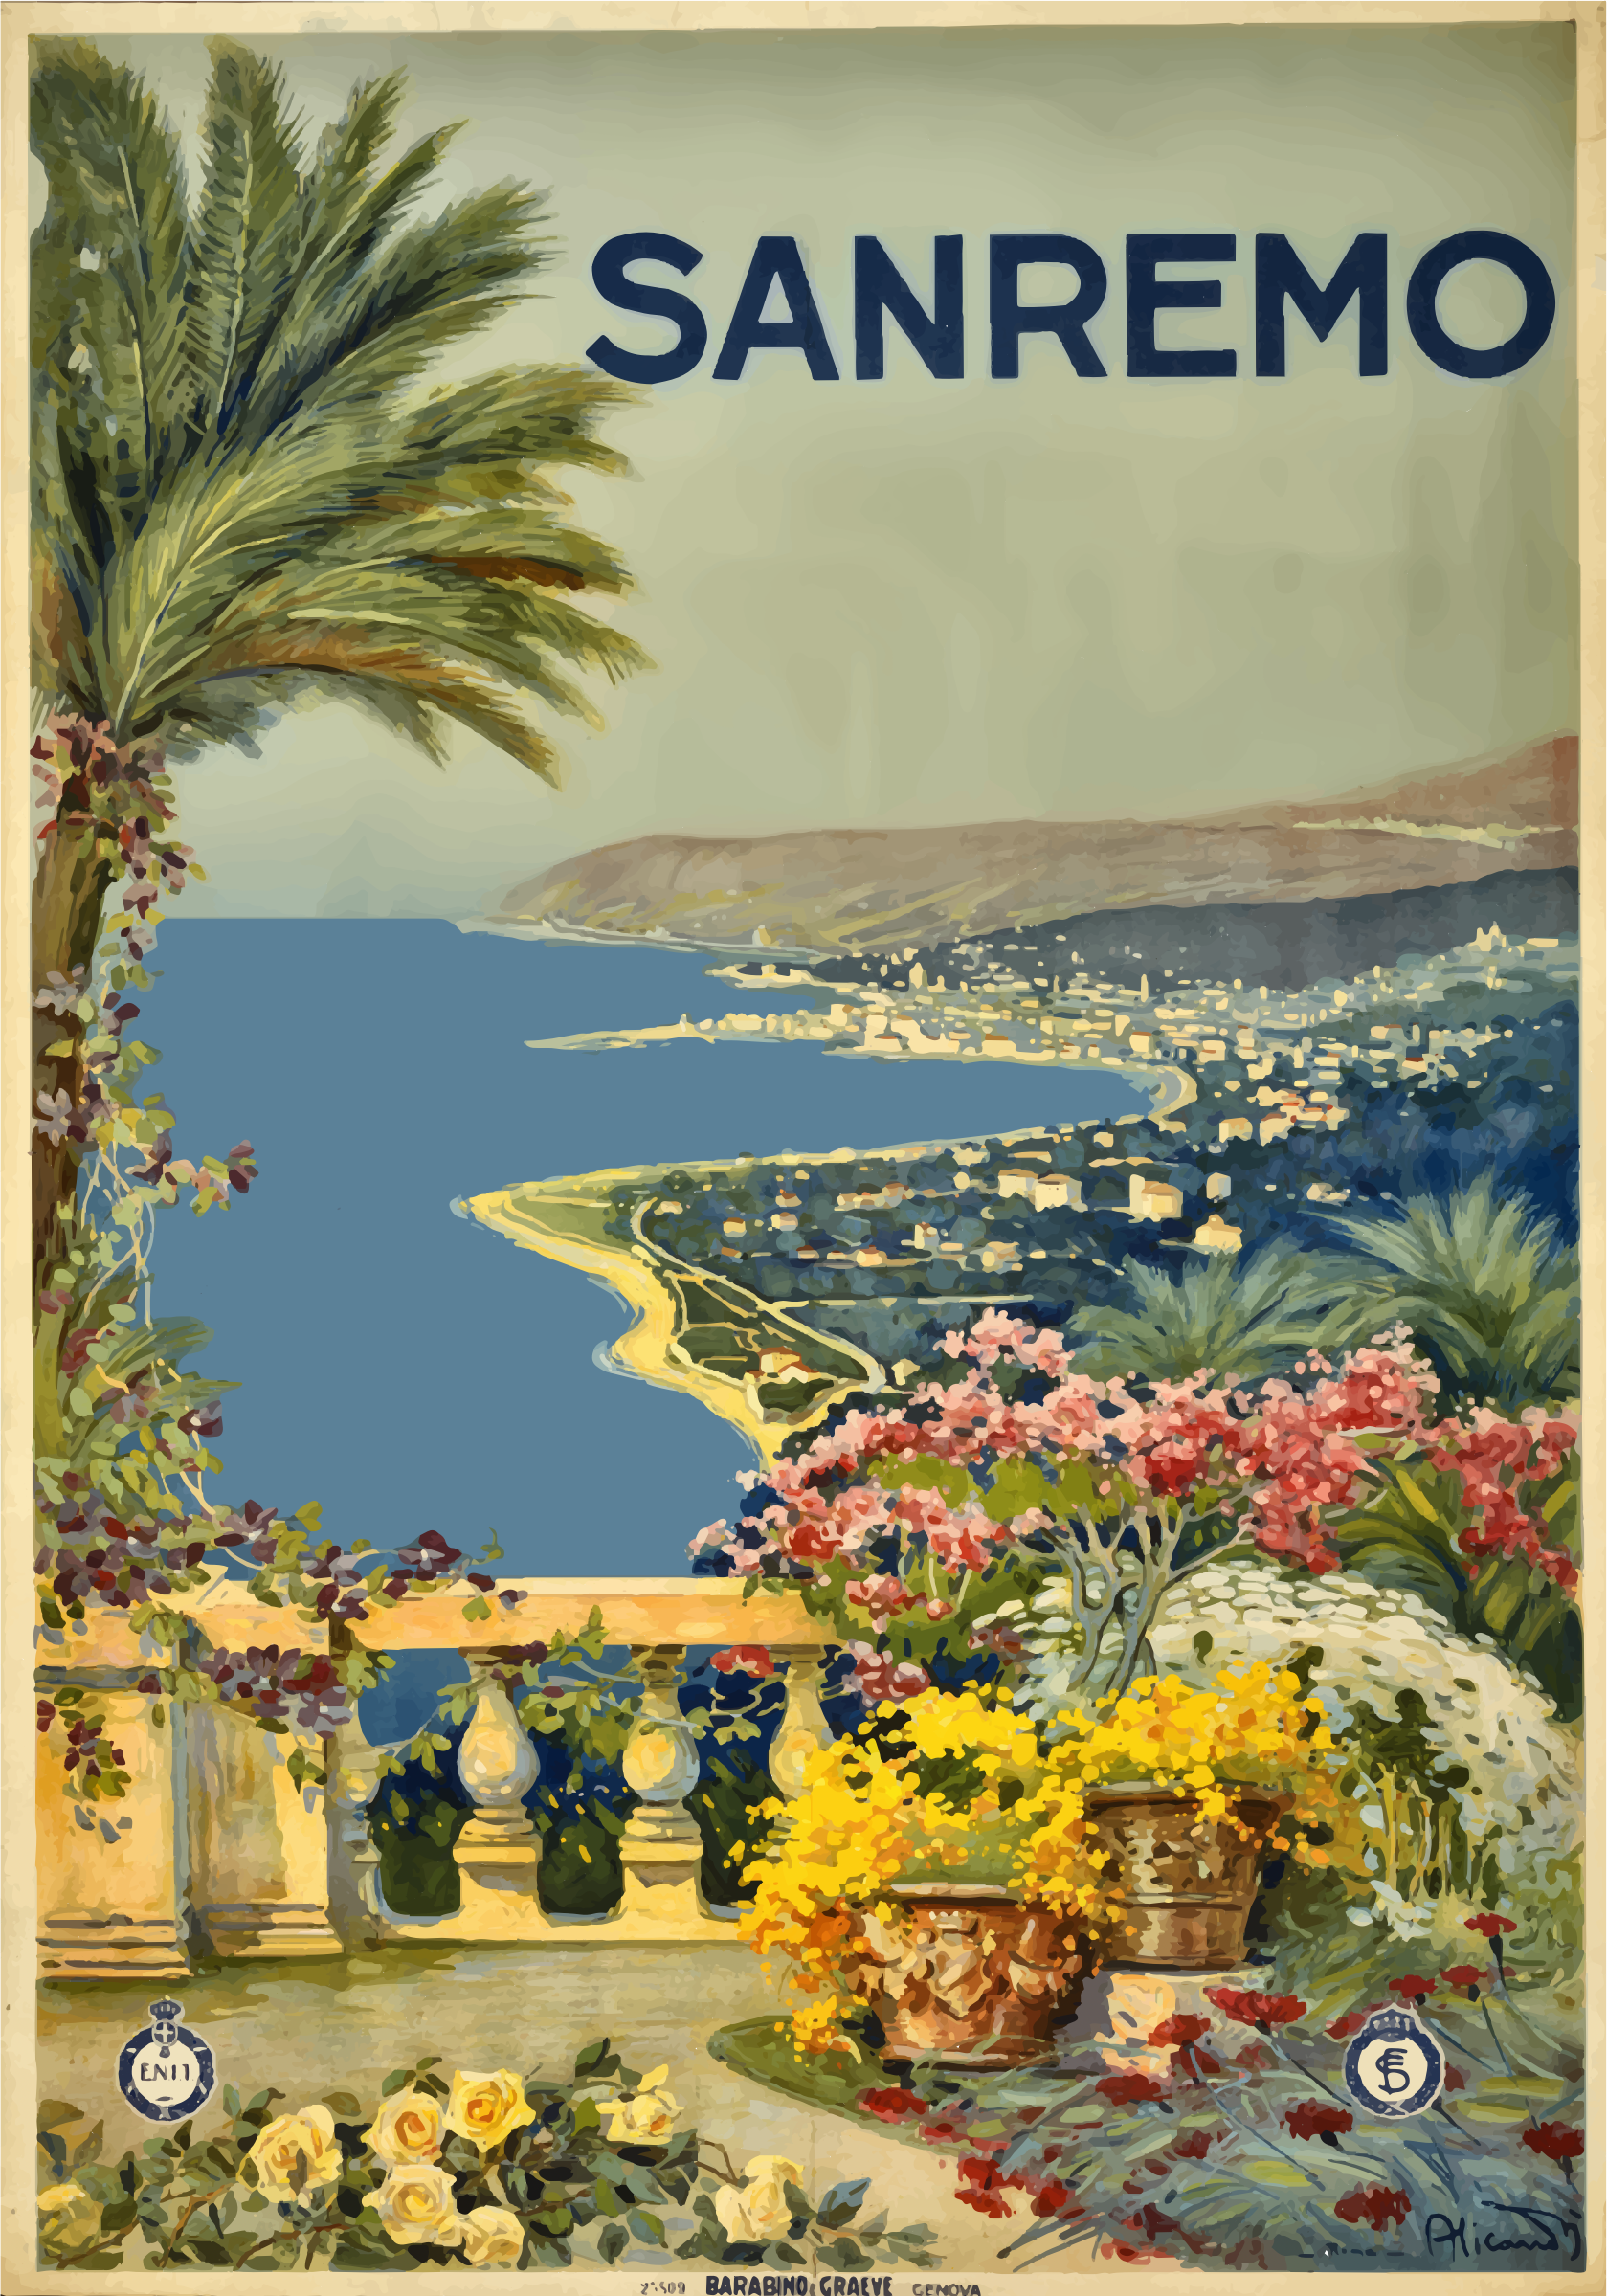 Sanremo Italy Vintage Travel Poster Trace 2 by GDJ